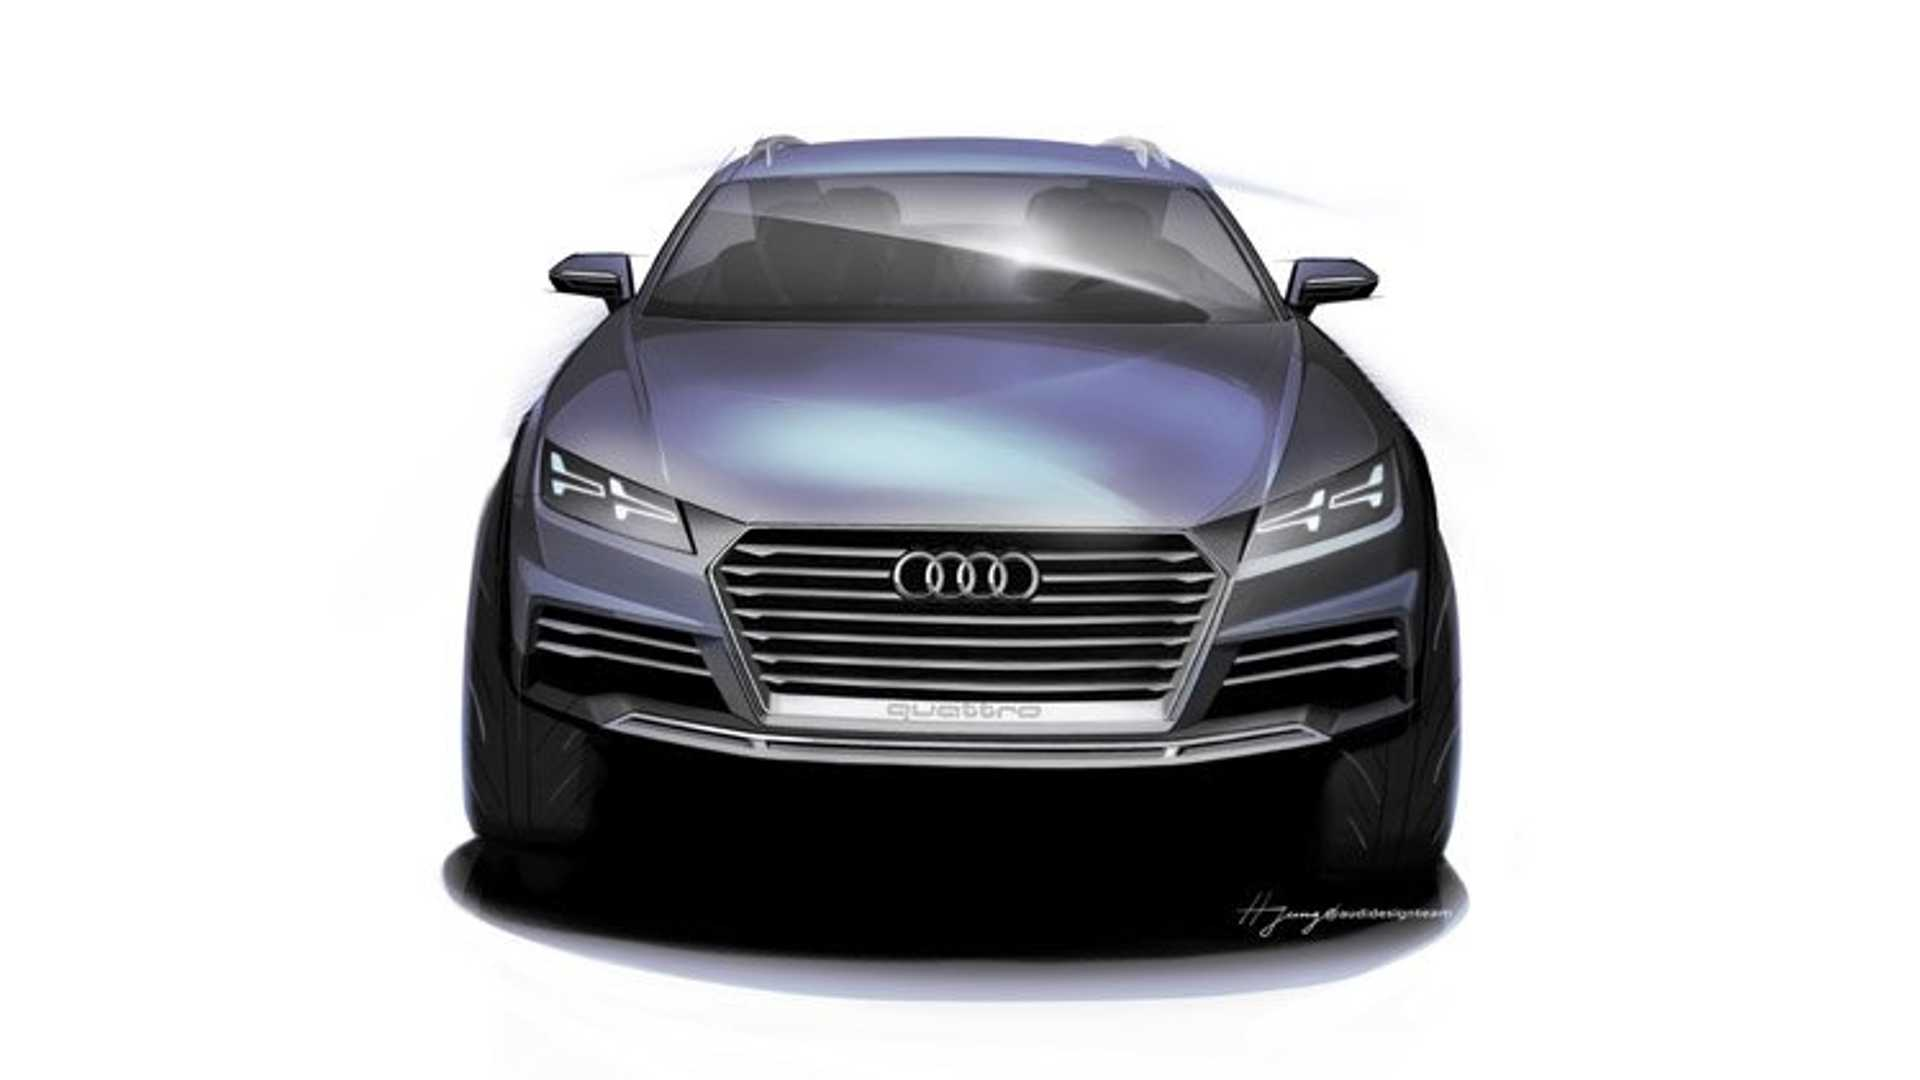 Audi Ceo Our Sporty Pure Electric Suv Is Coming In 2017 Will Compete With Tesla Model X